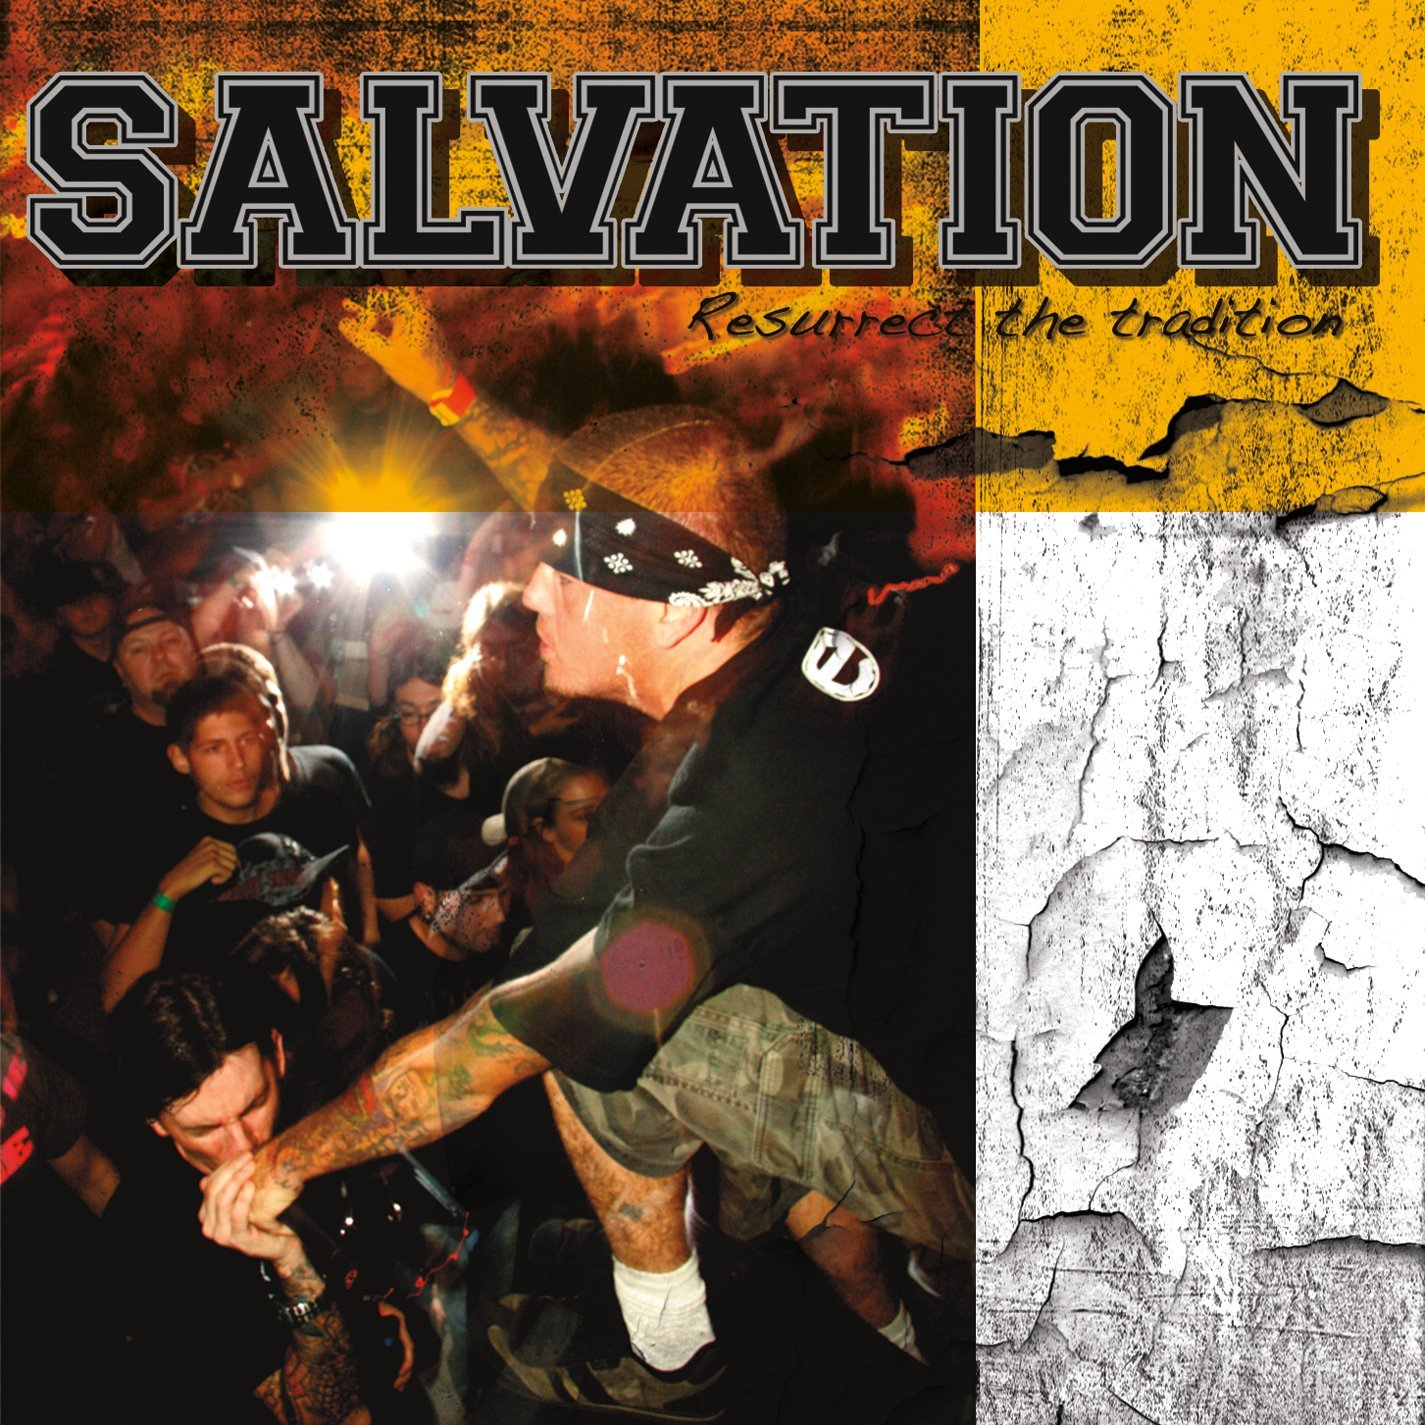 Alben der Woche 23.01.15 - Salvation RESURRECT THE TRADITION